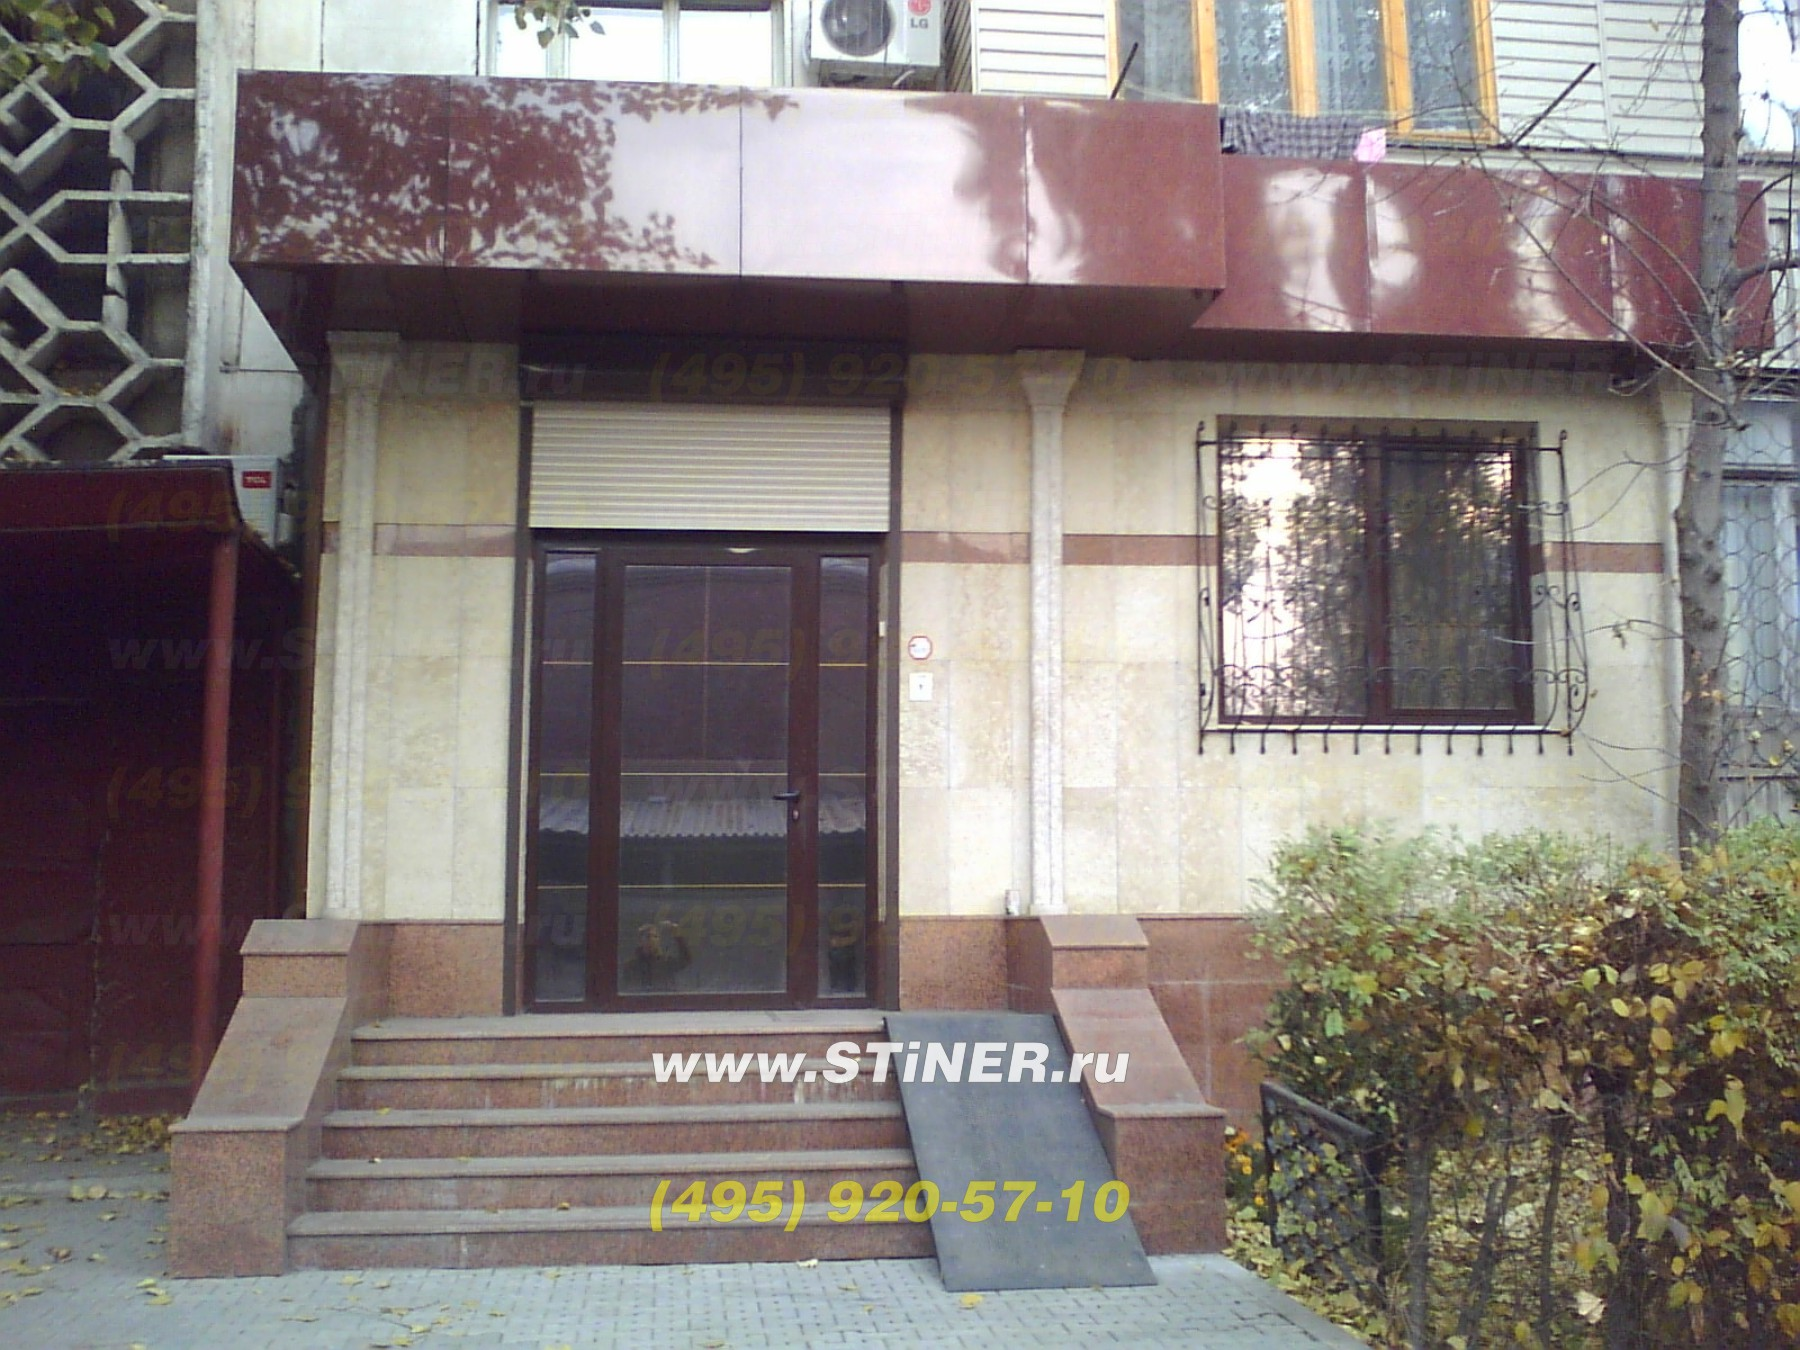 Stiner company is doing installation of outside protective shutters in Moscow